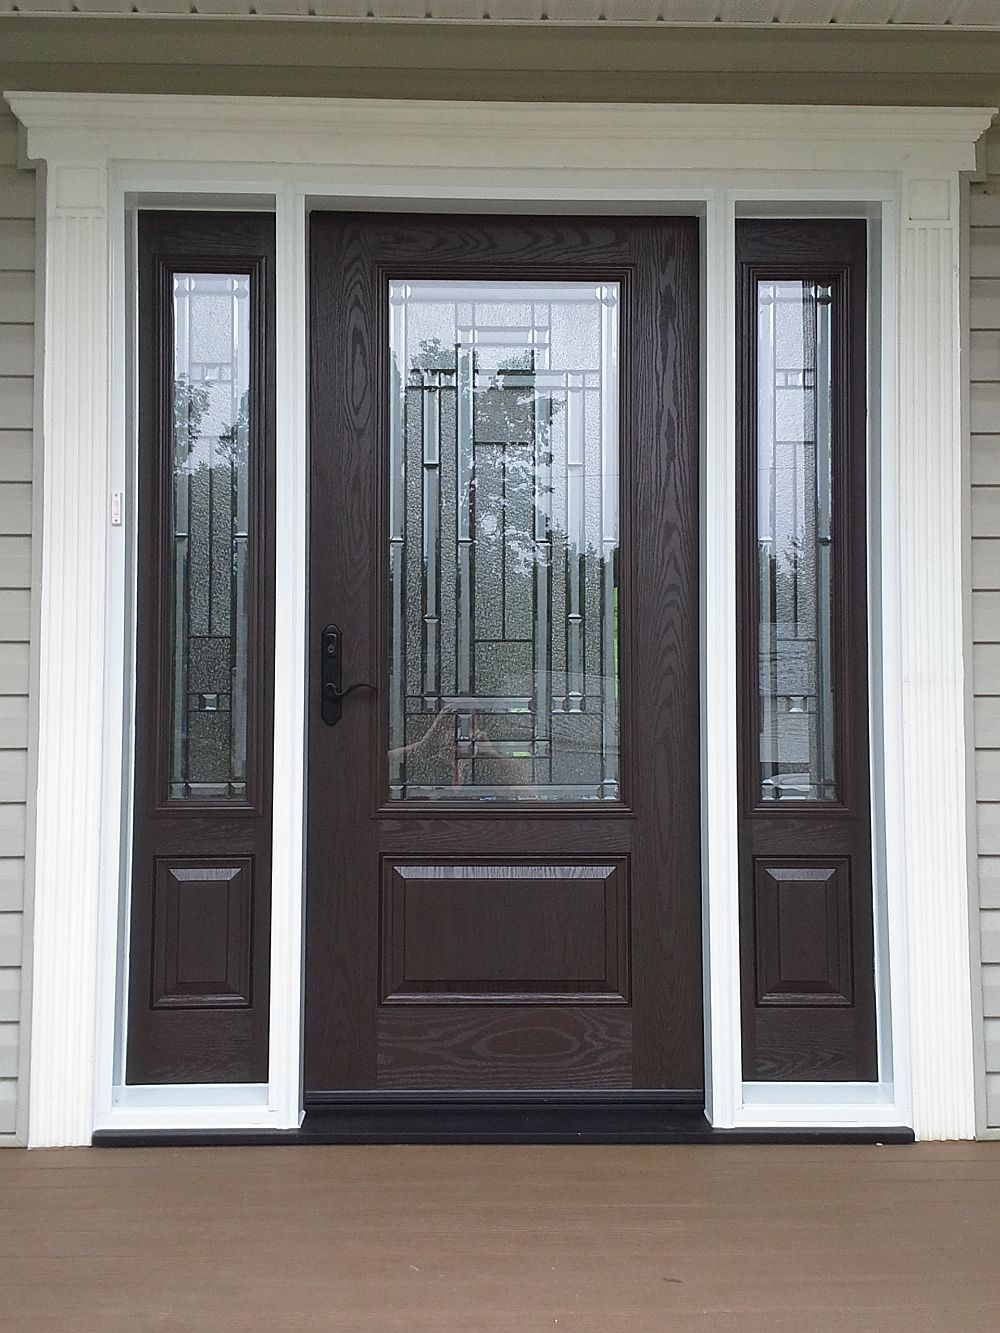 A classic brown fibreglass door installed by Windows Plus.